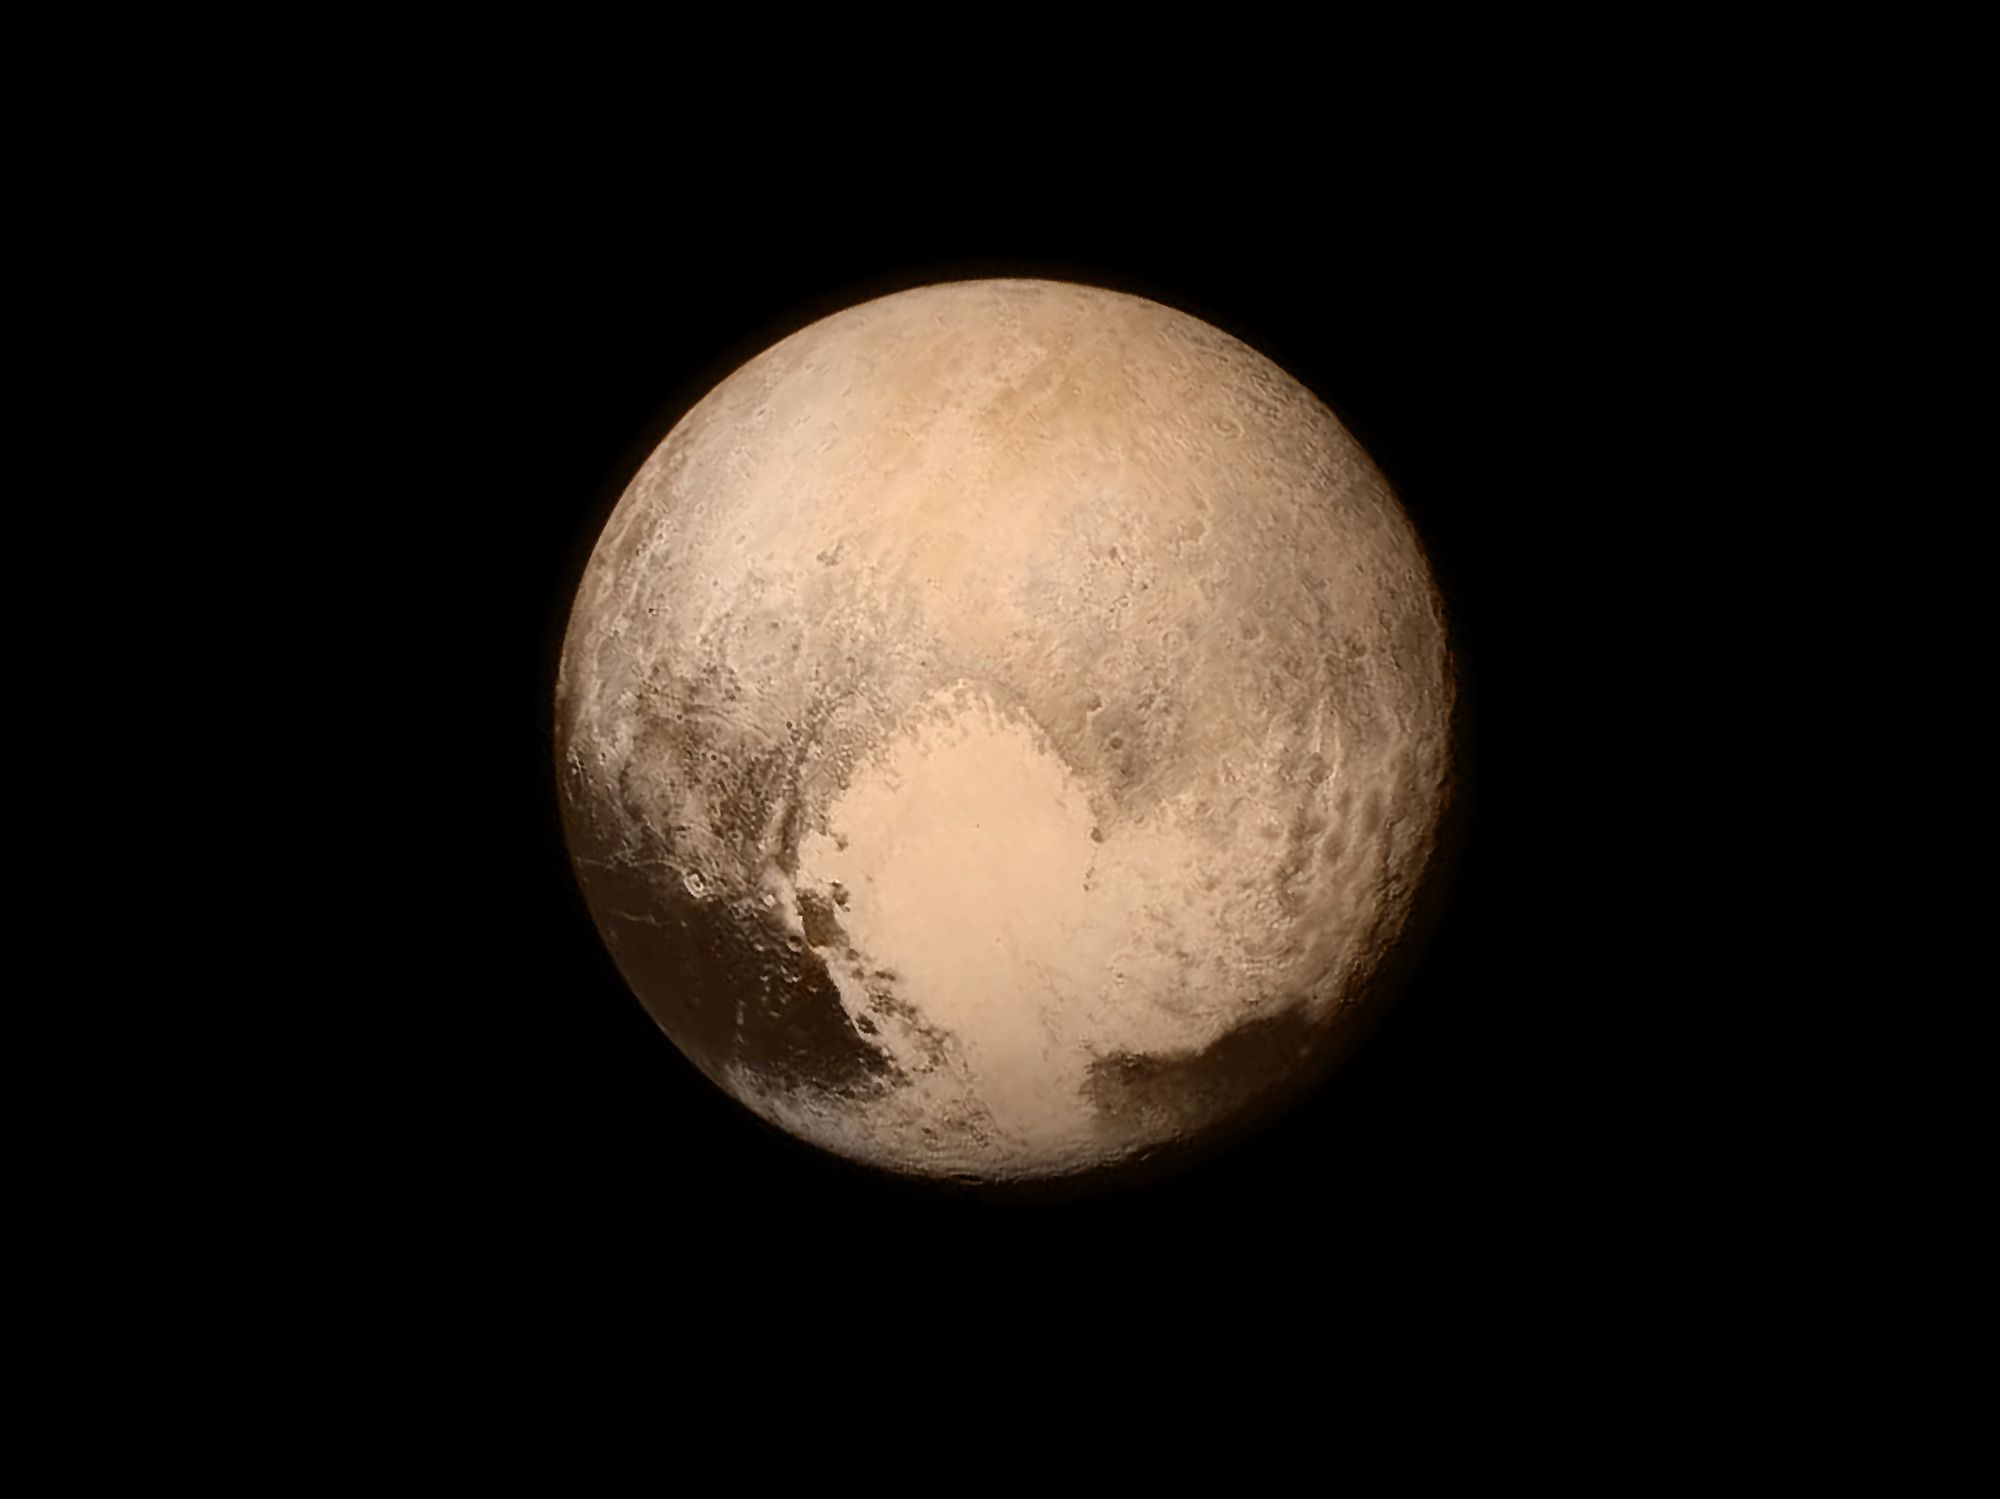 The planet Pluto captured in 2015 from the New Horizons spacecraft.